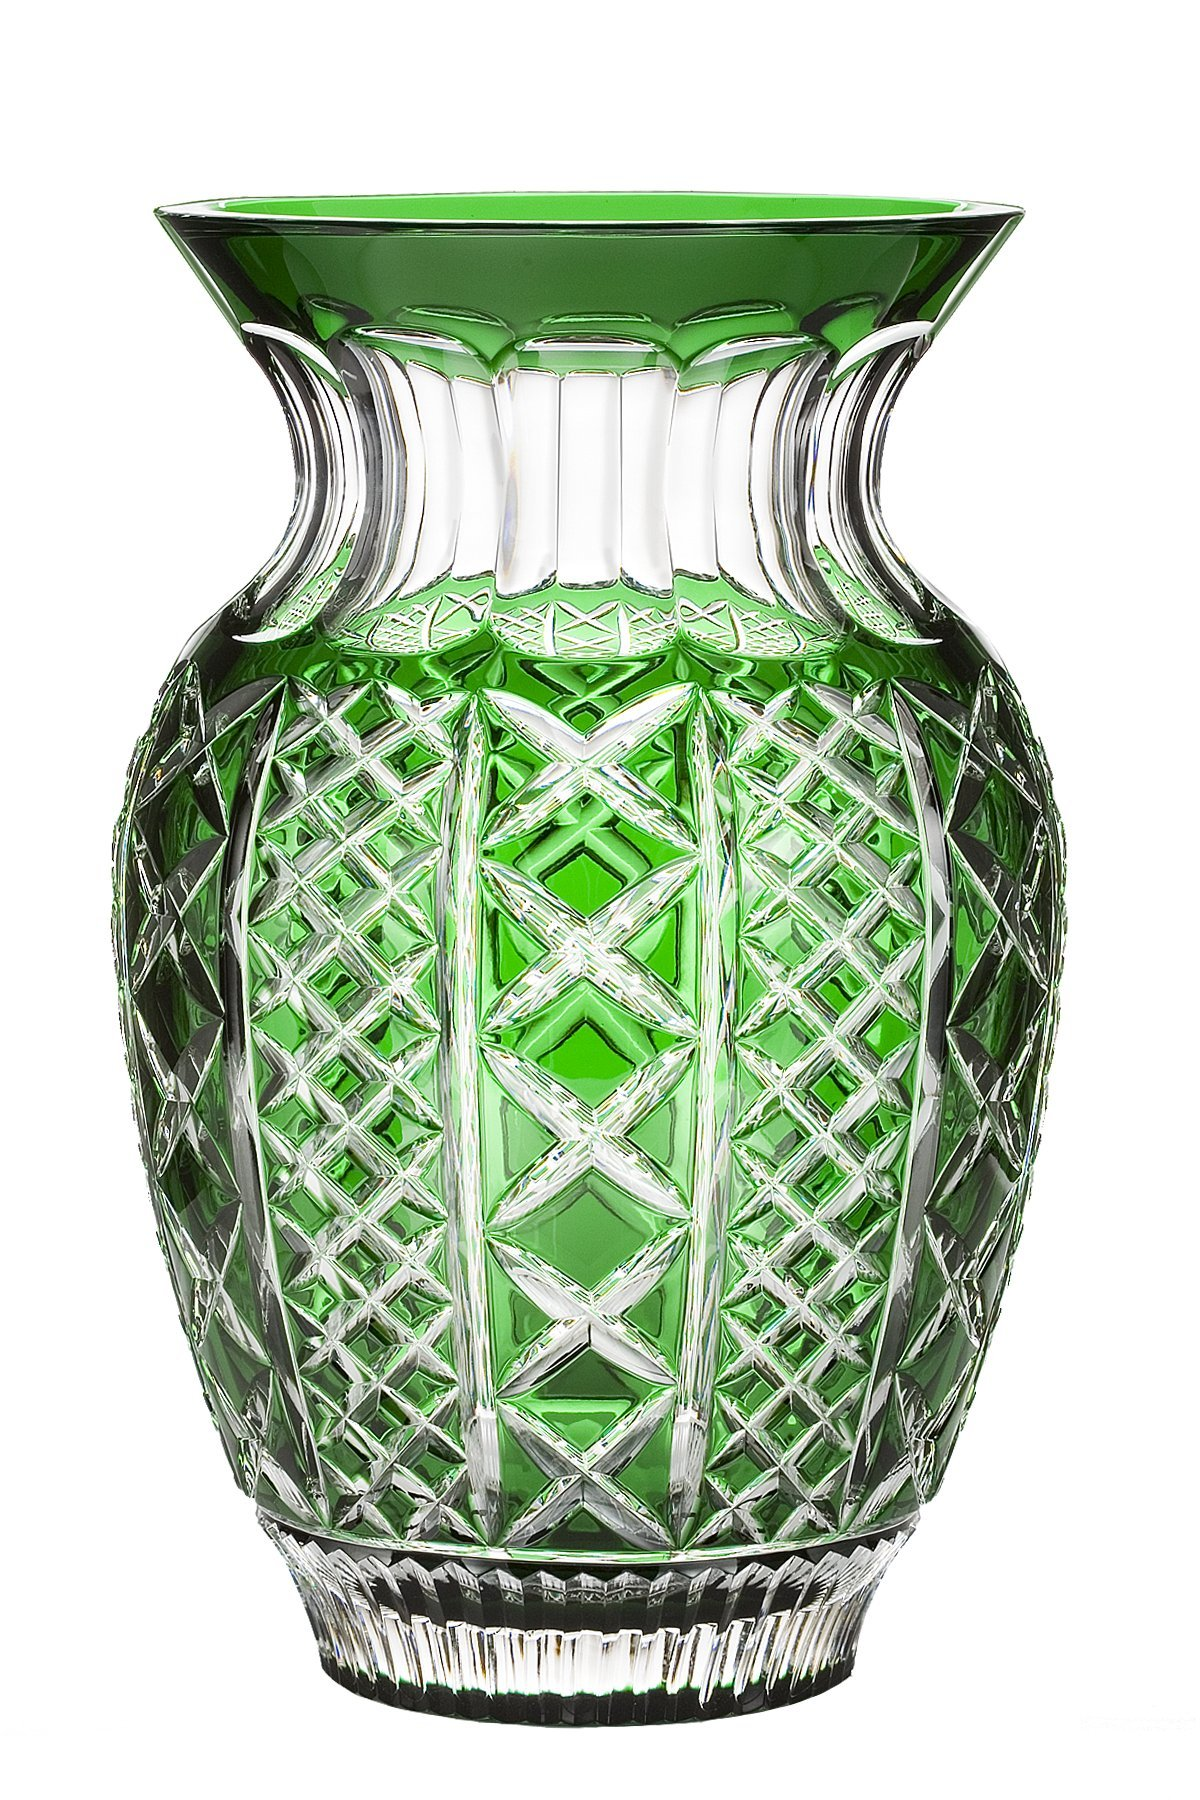 Waterford Fleurology Molly 12-Inch Emerald Cased Bouquet Vase by Waterford